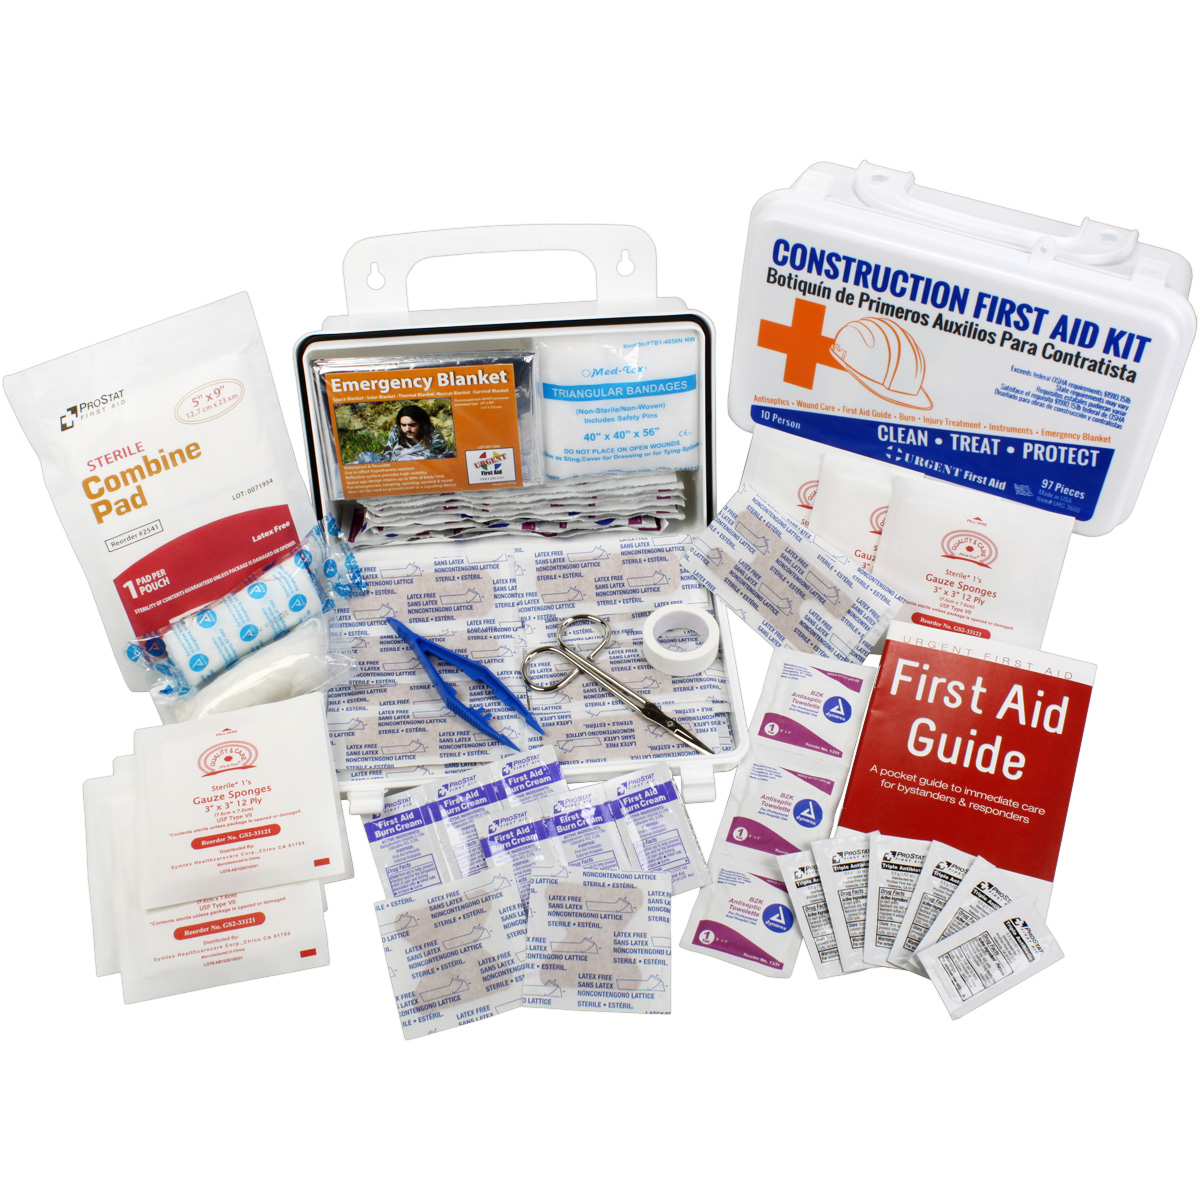 OSHA Contractors First Aid Kit for Job Sites up to 10 People ? Gasketed Plastic, 97 pieces